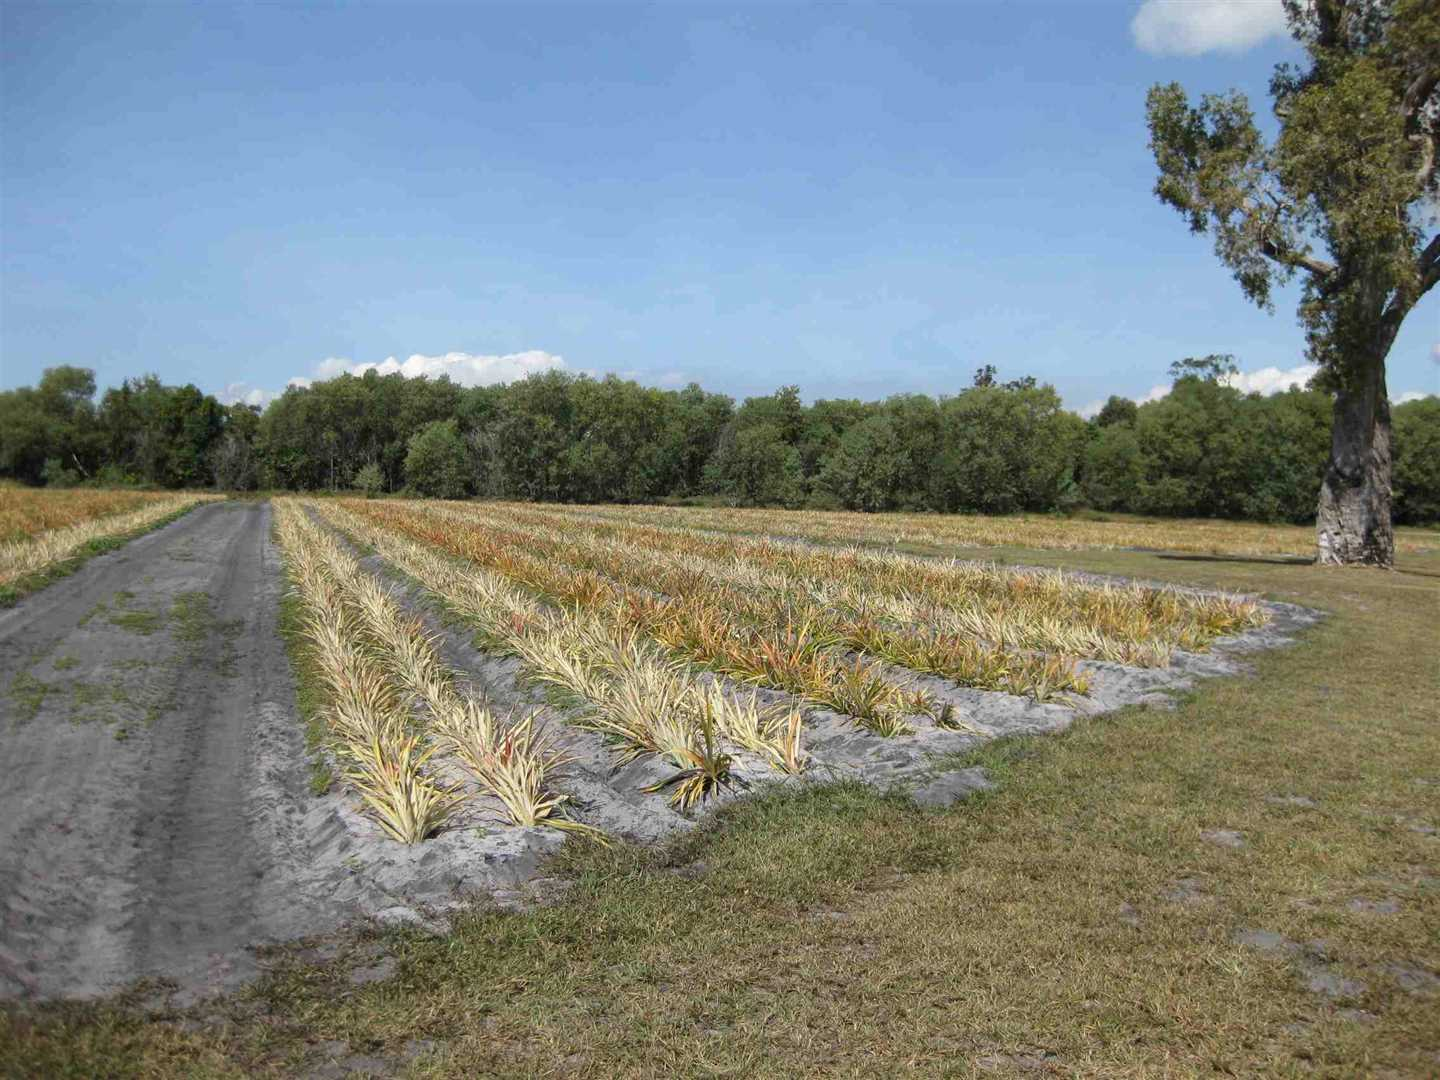 View of part of property, showing part of leased Organic pineapples being grown by the Lessee, photo 2